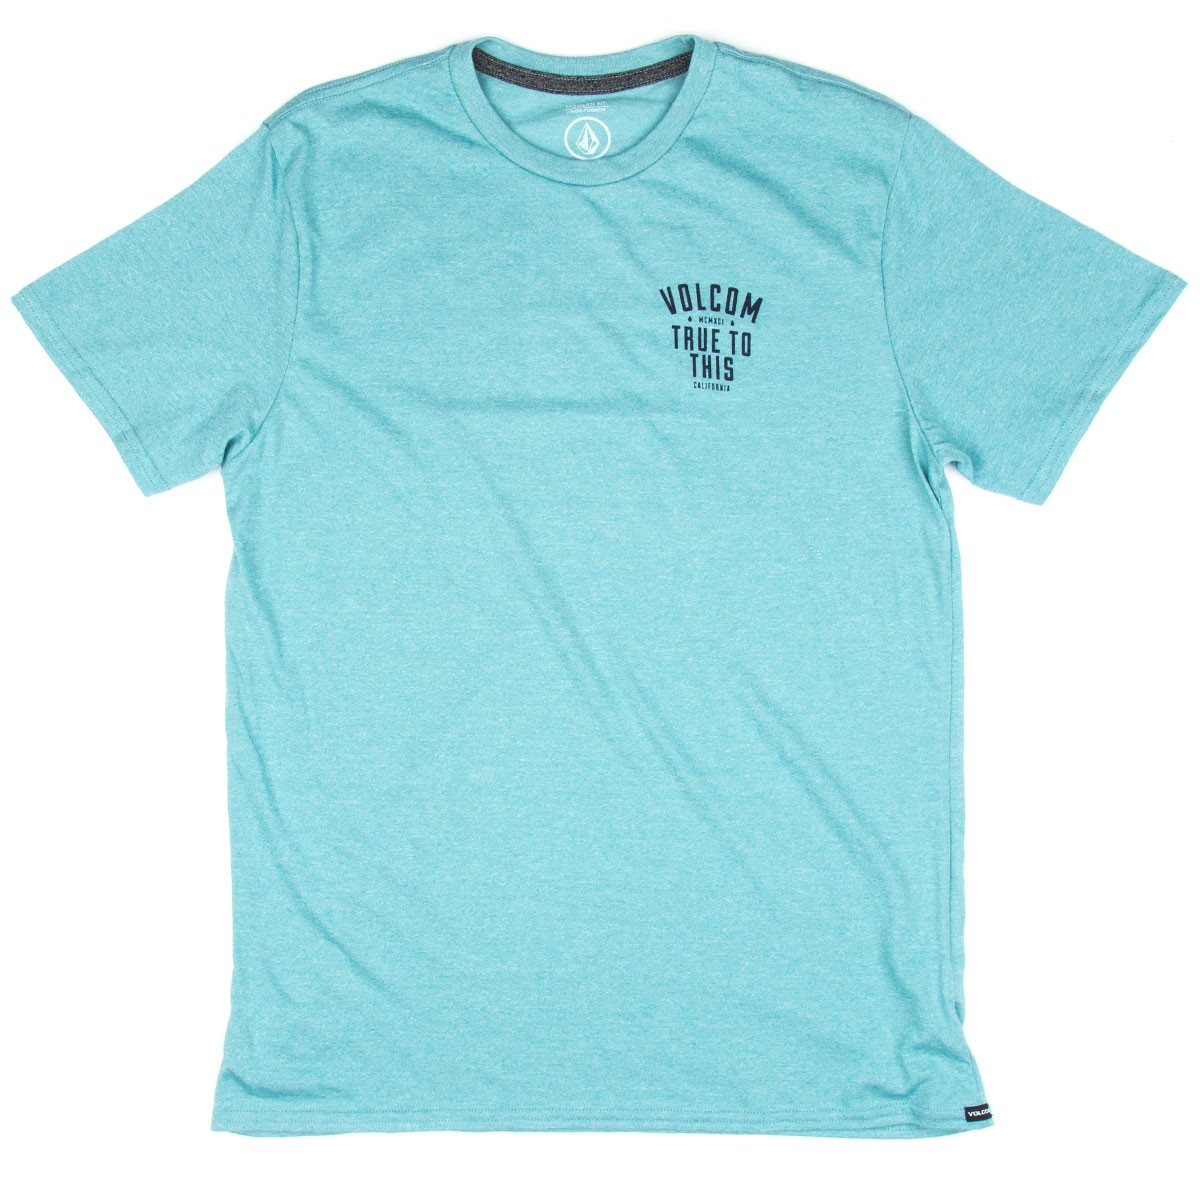 Volcom True T-Shirt - Stormy Blue